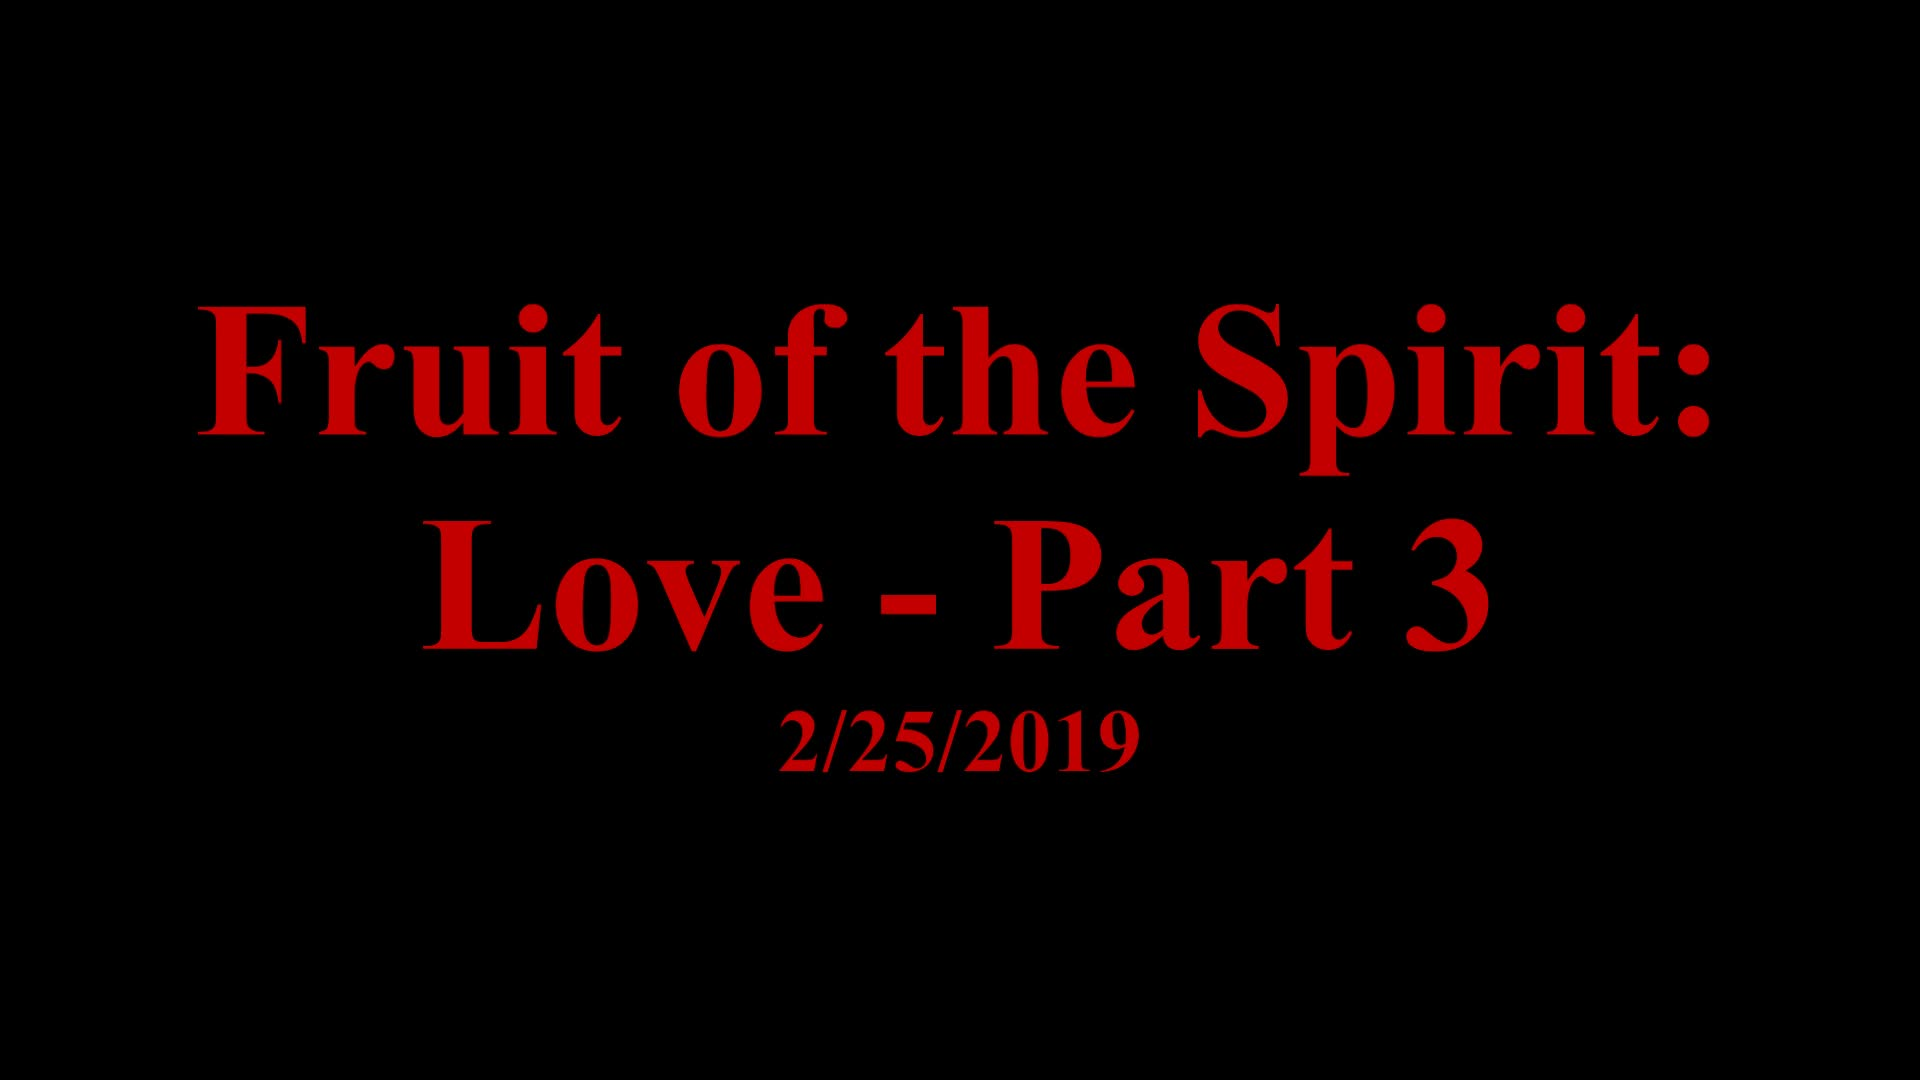 Fruit of the Spirit: Love Part 3